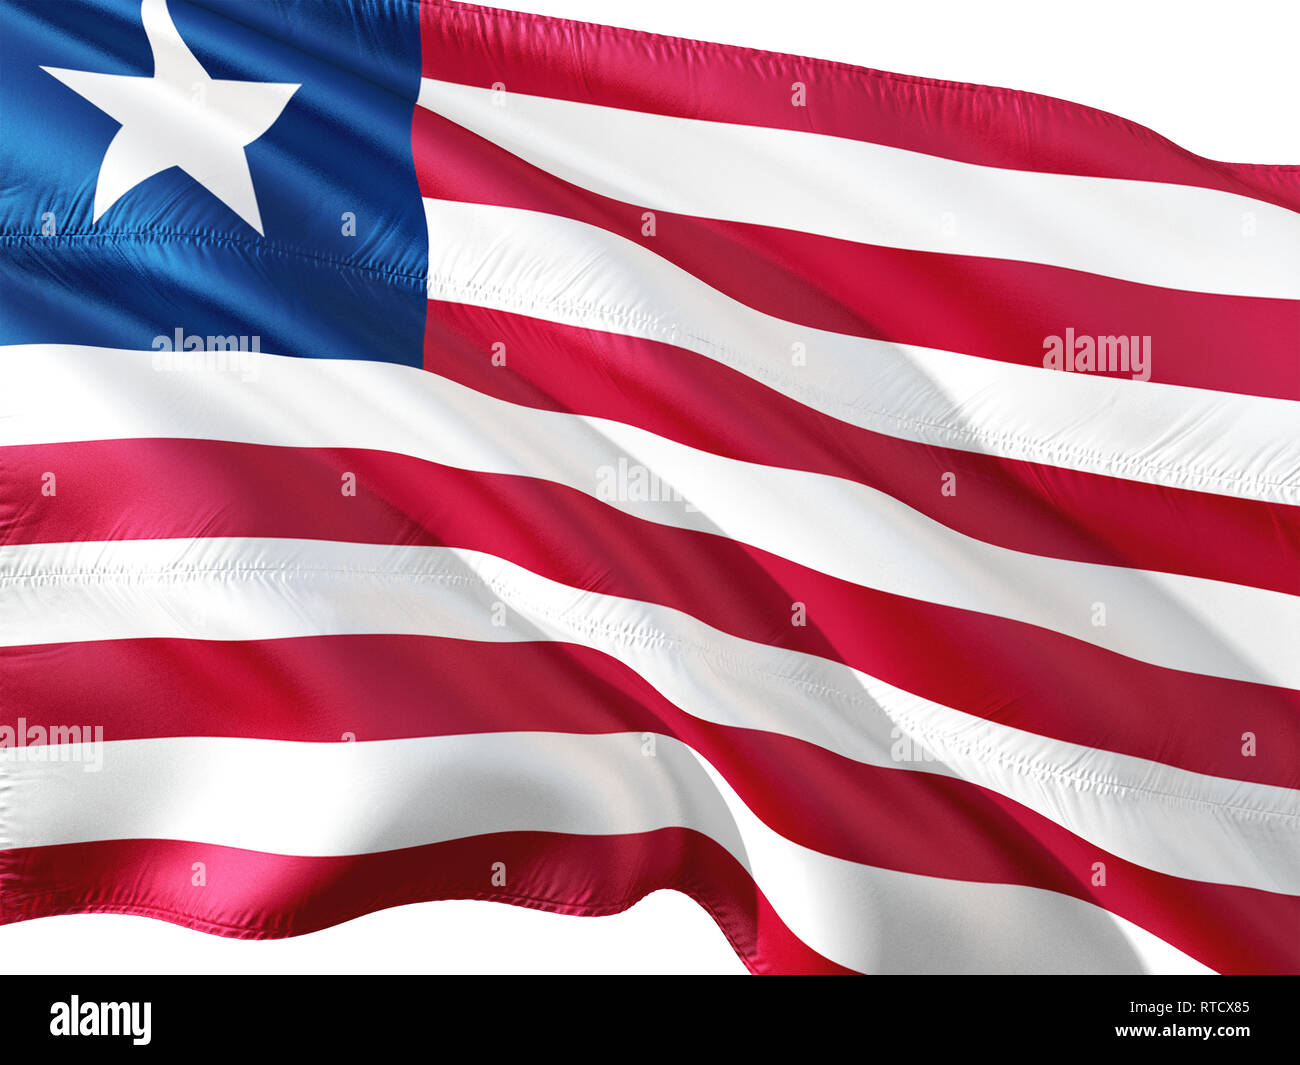 Flag of Liberia waving in the wind, isolated white